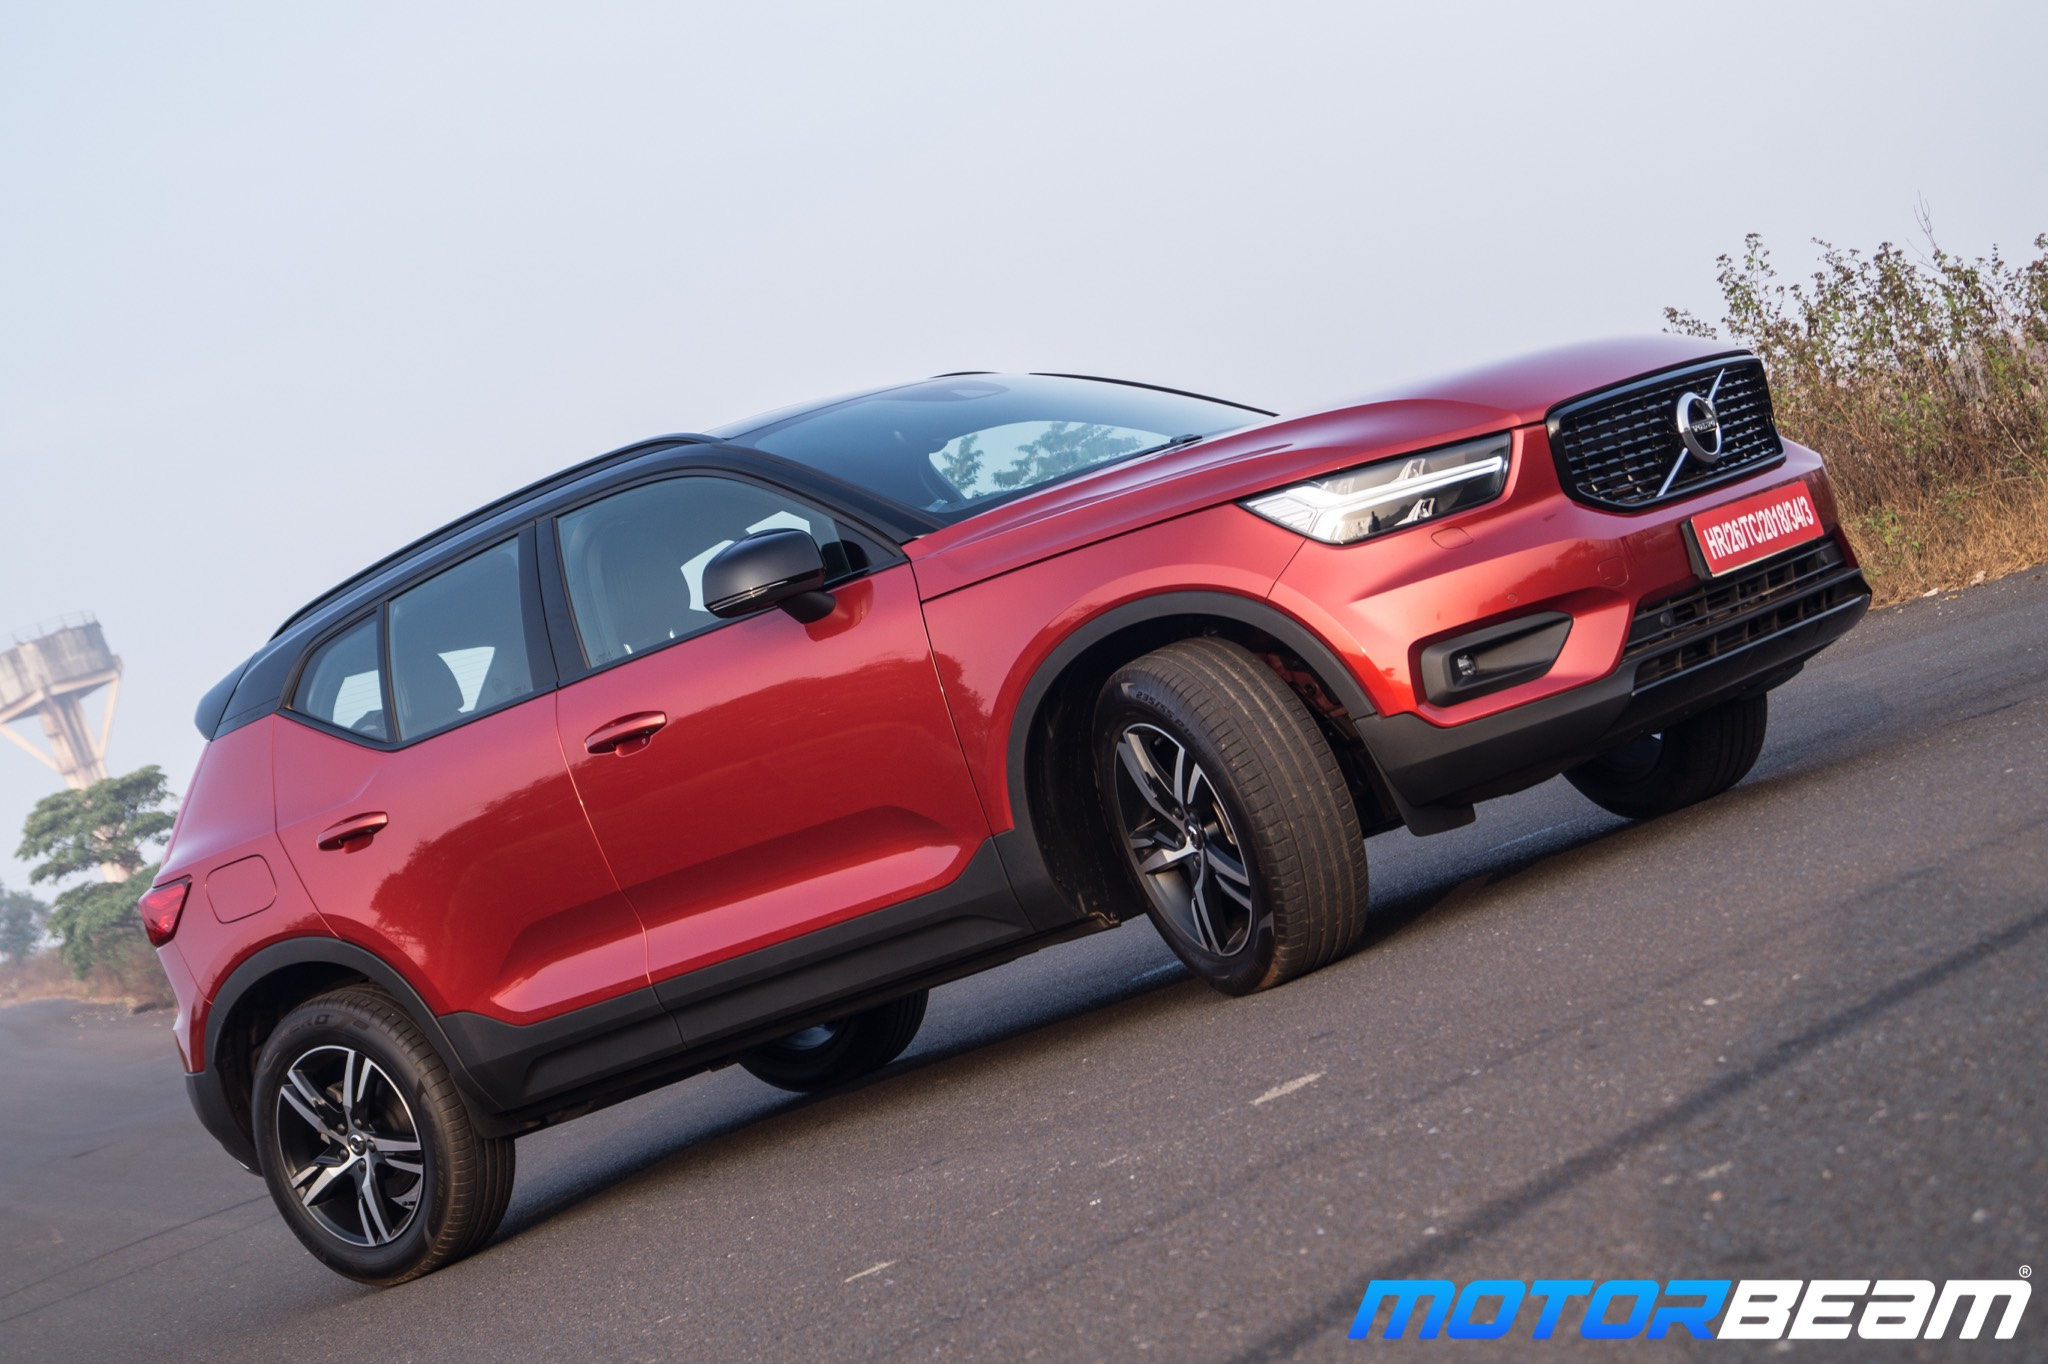 2020 Volvo XC40 Petrol Review